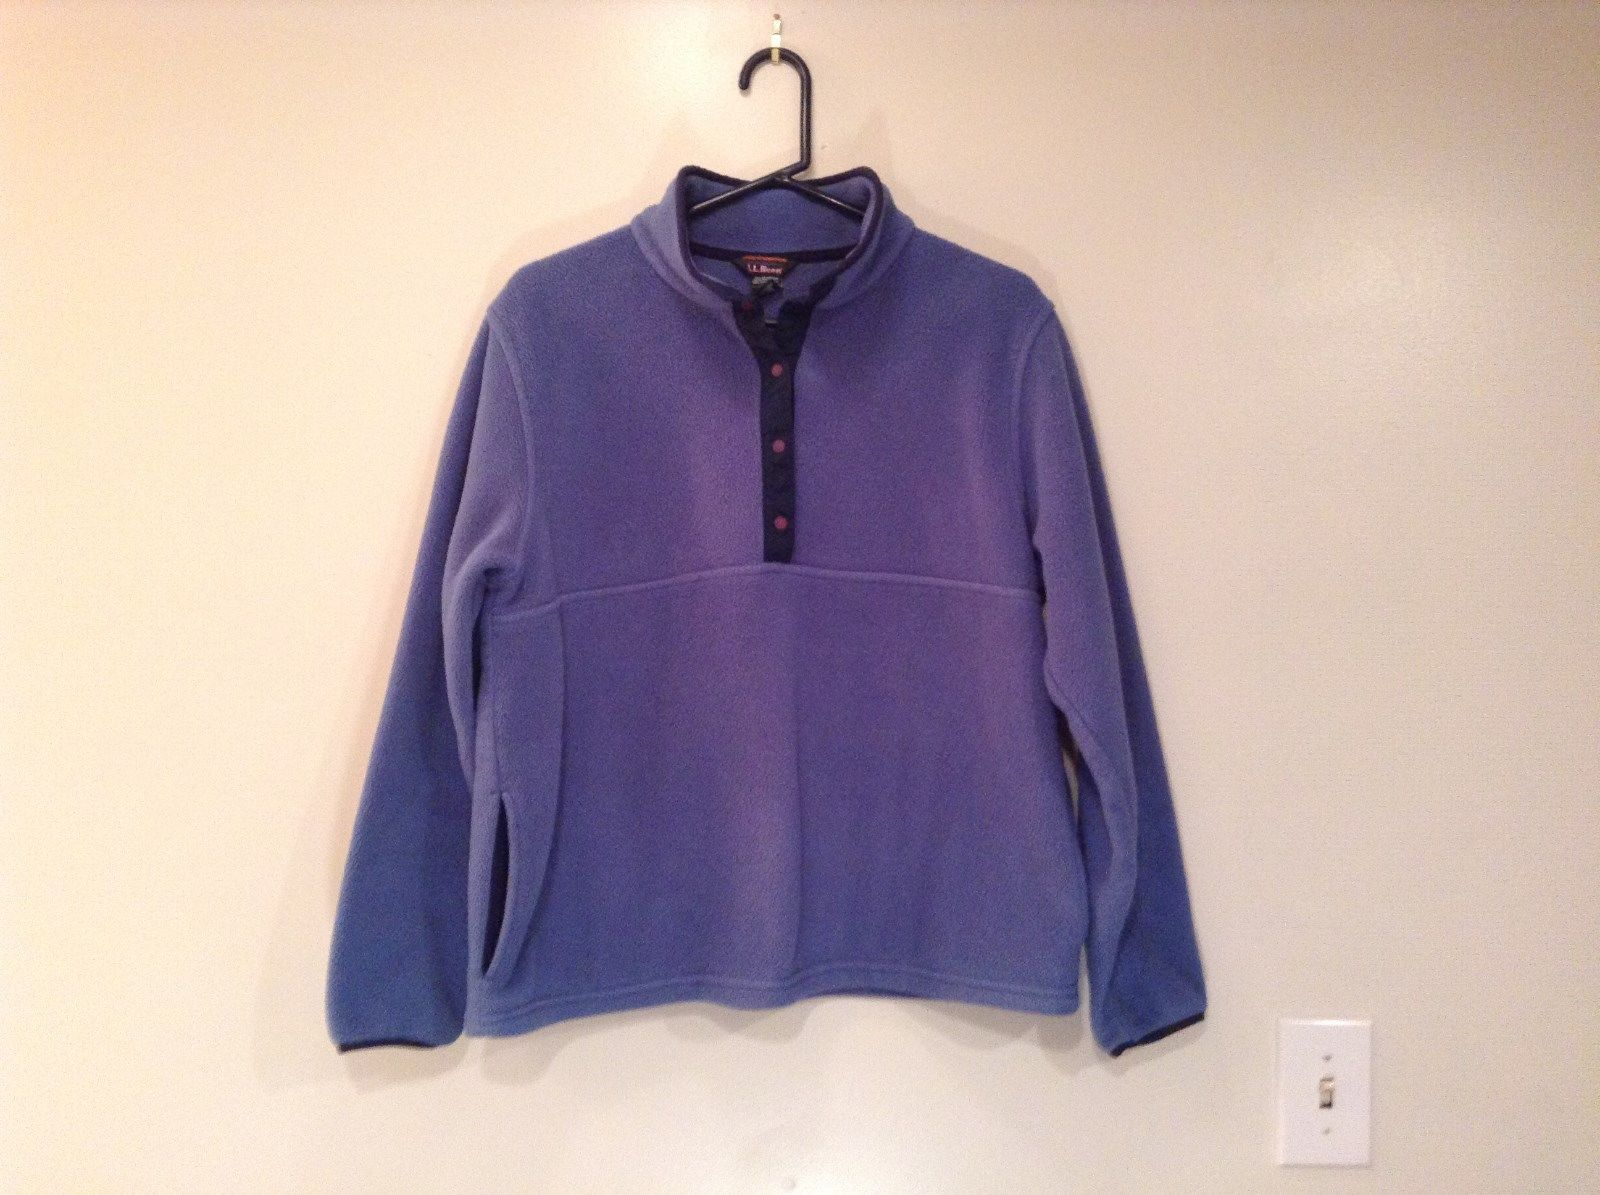 L L Bean Blue with Dark Blue Trim Long Sleeve Fleece Top Side Pockets Size L Reg